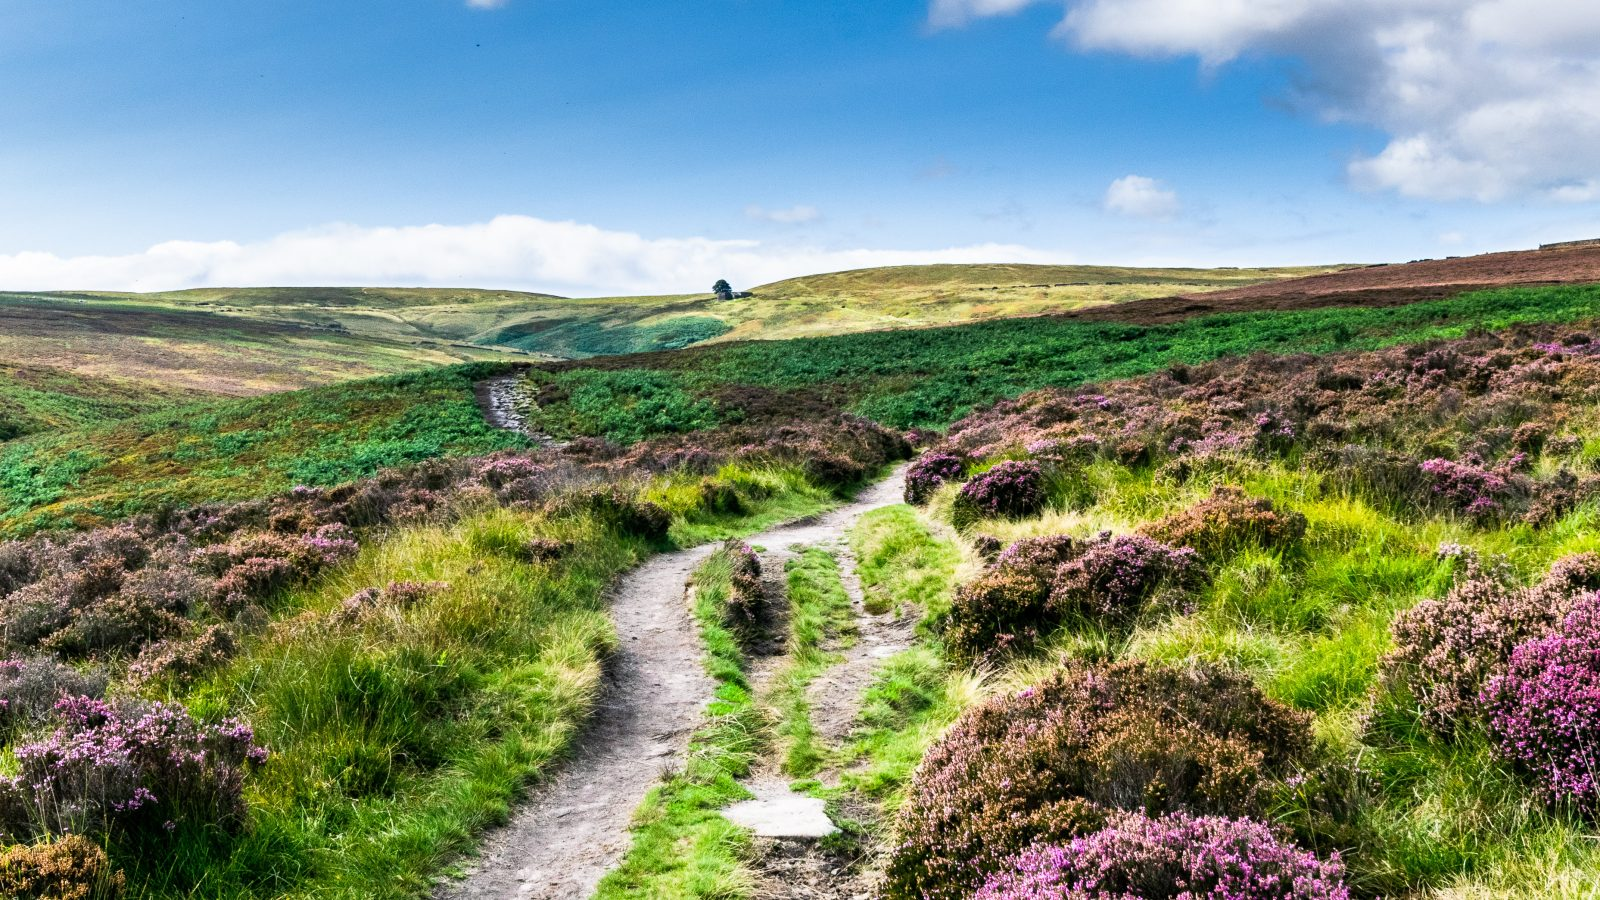 Yorkshire Moors Near Top Withens, Rumoured to be the setting for Wuthering Heights by Charlotte Bronte of the Bronte Sisters